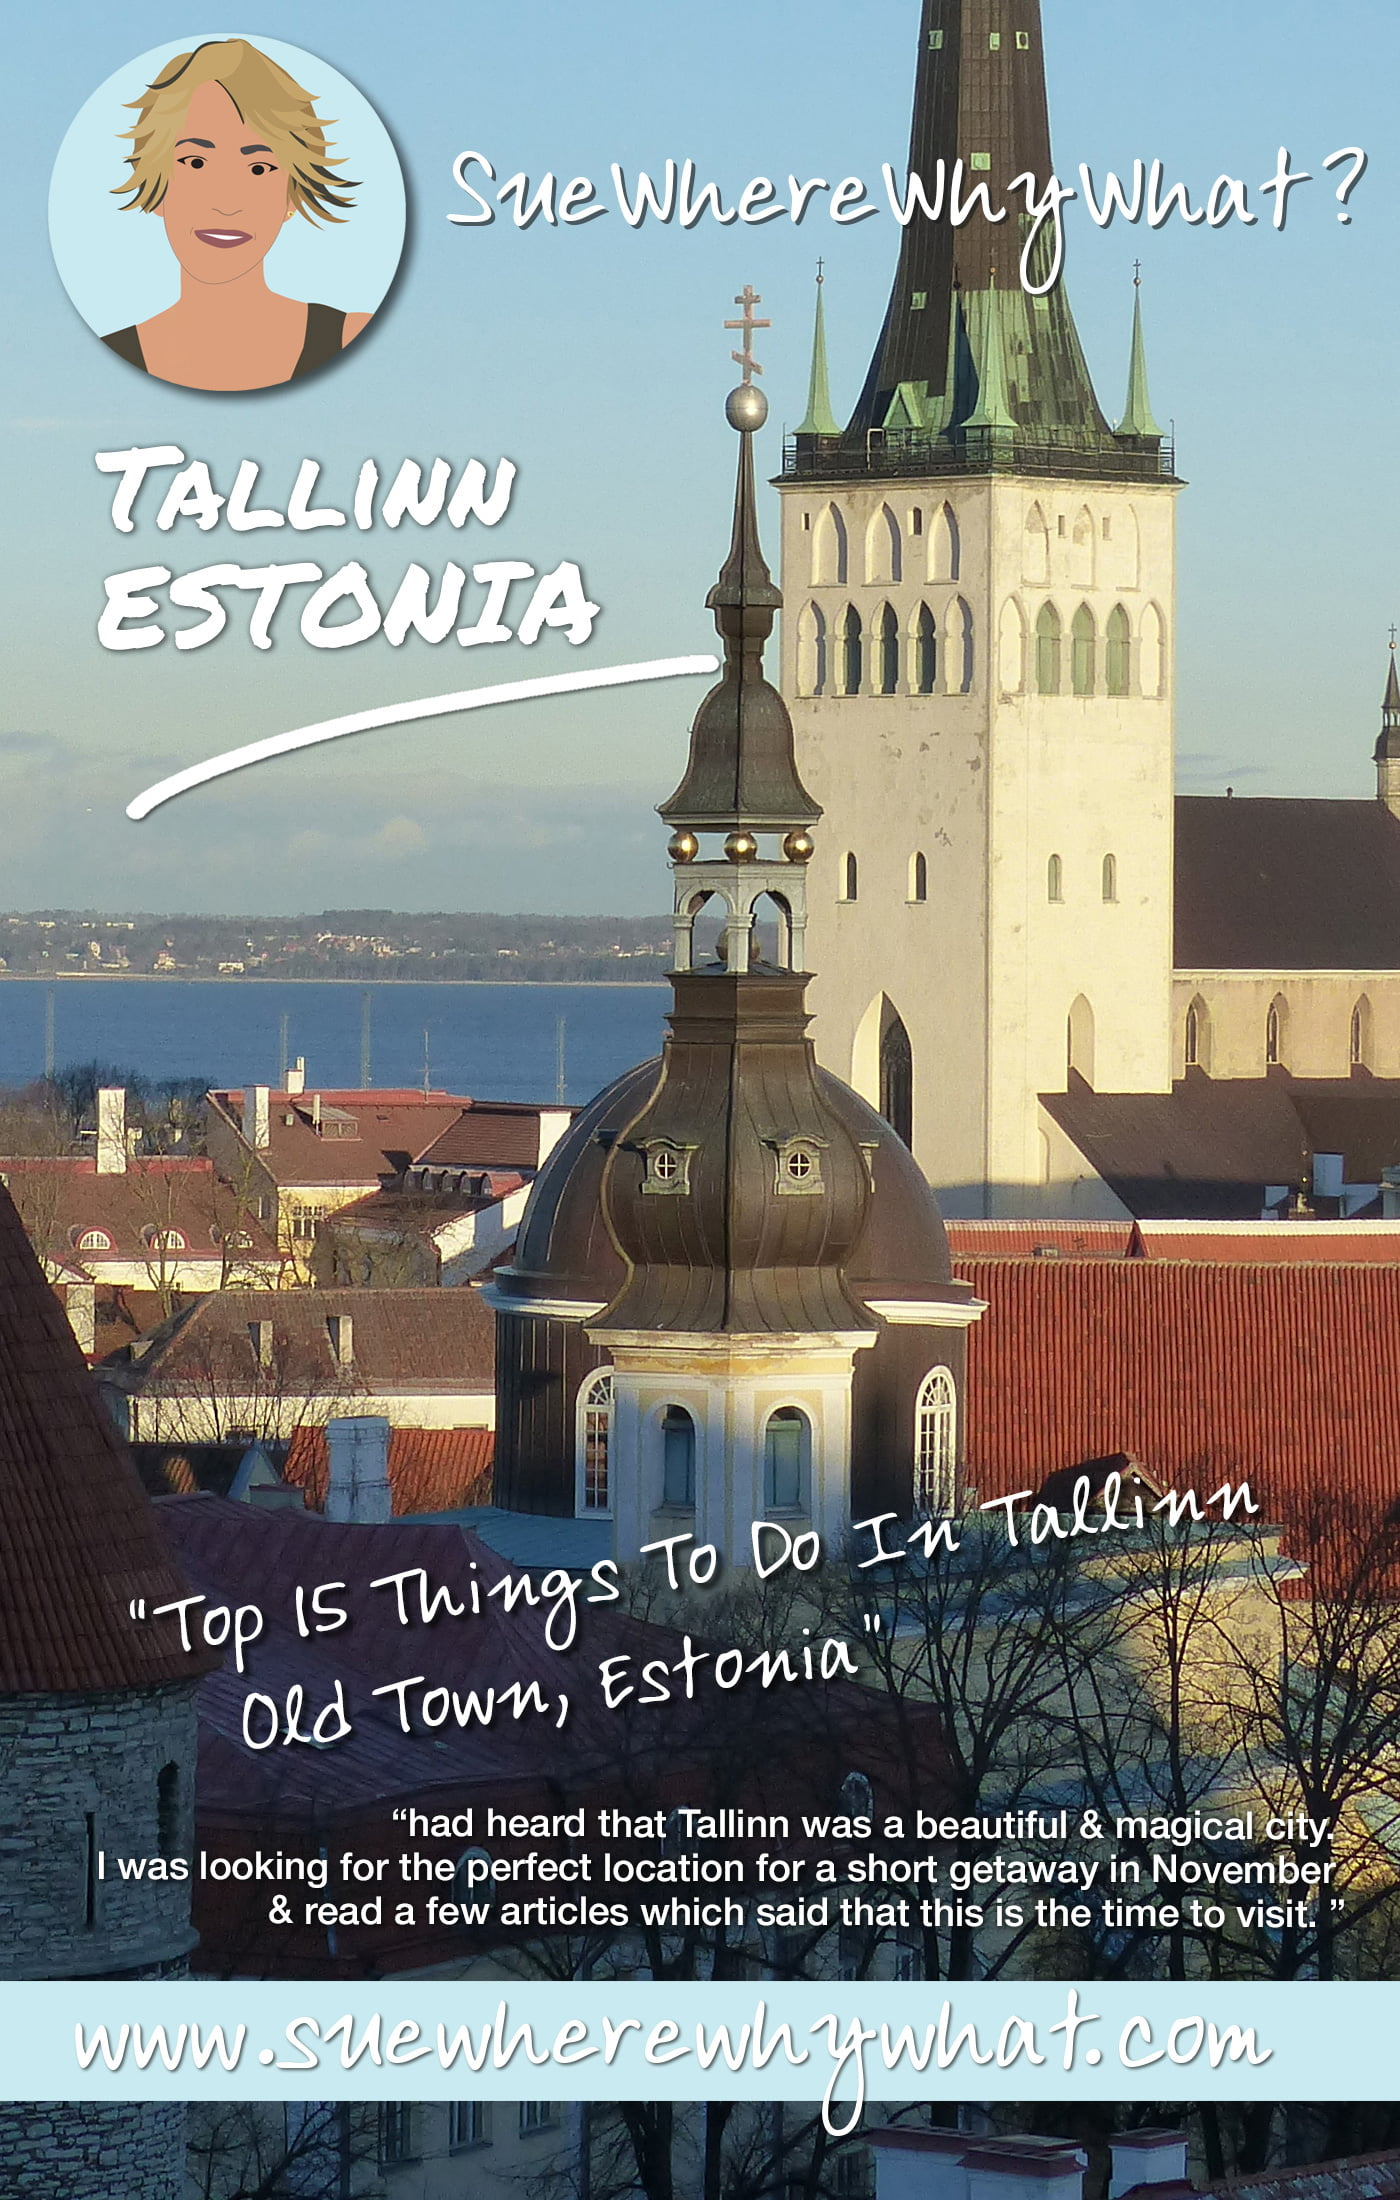 Top 15 Things To Do In Tallinn Old Town, Estonia